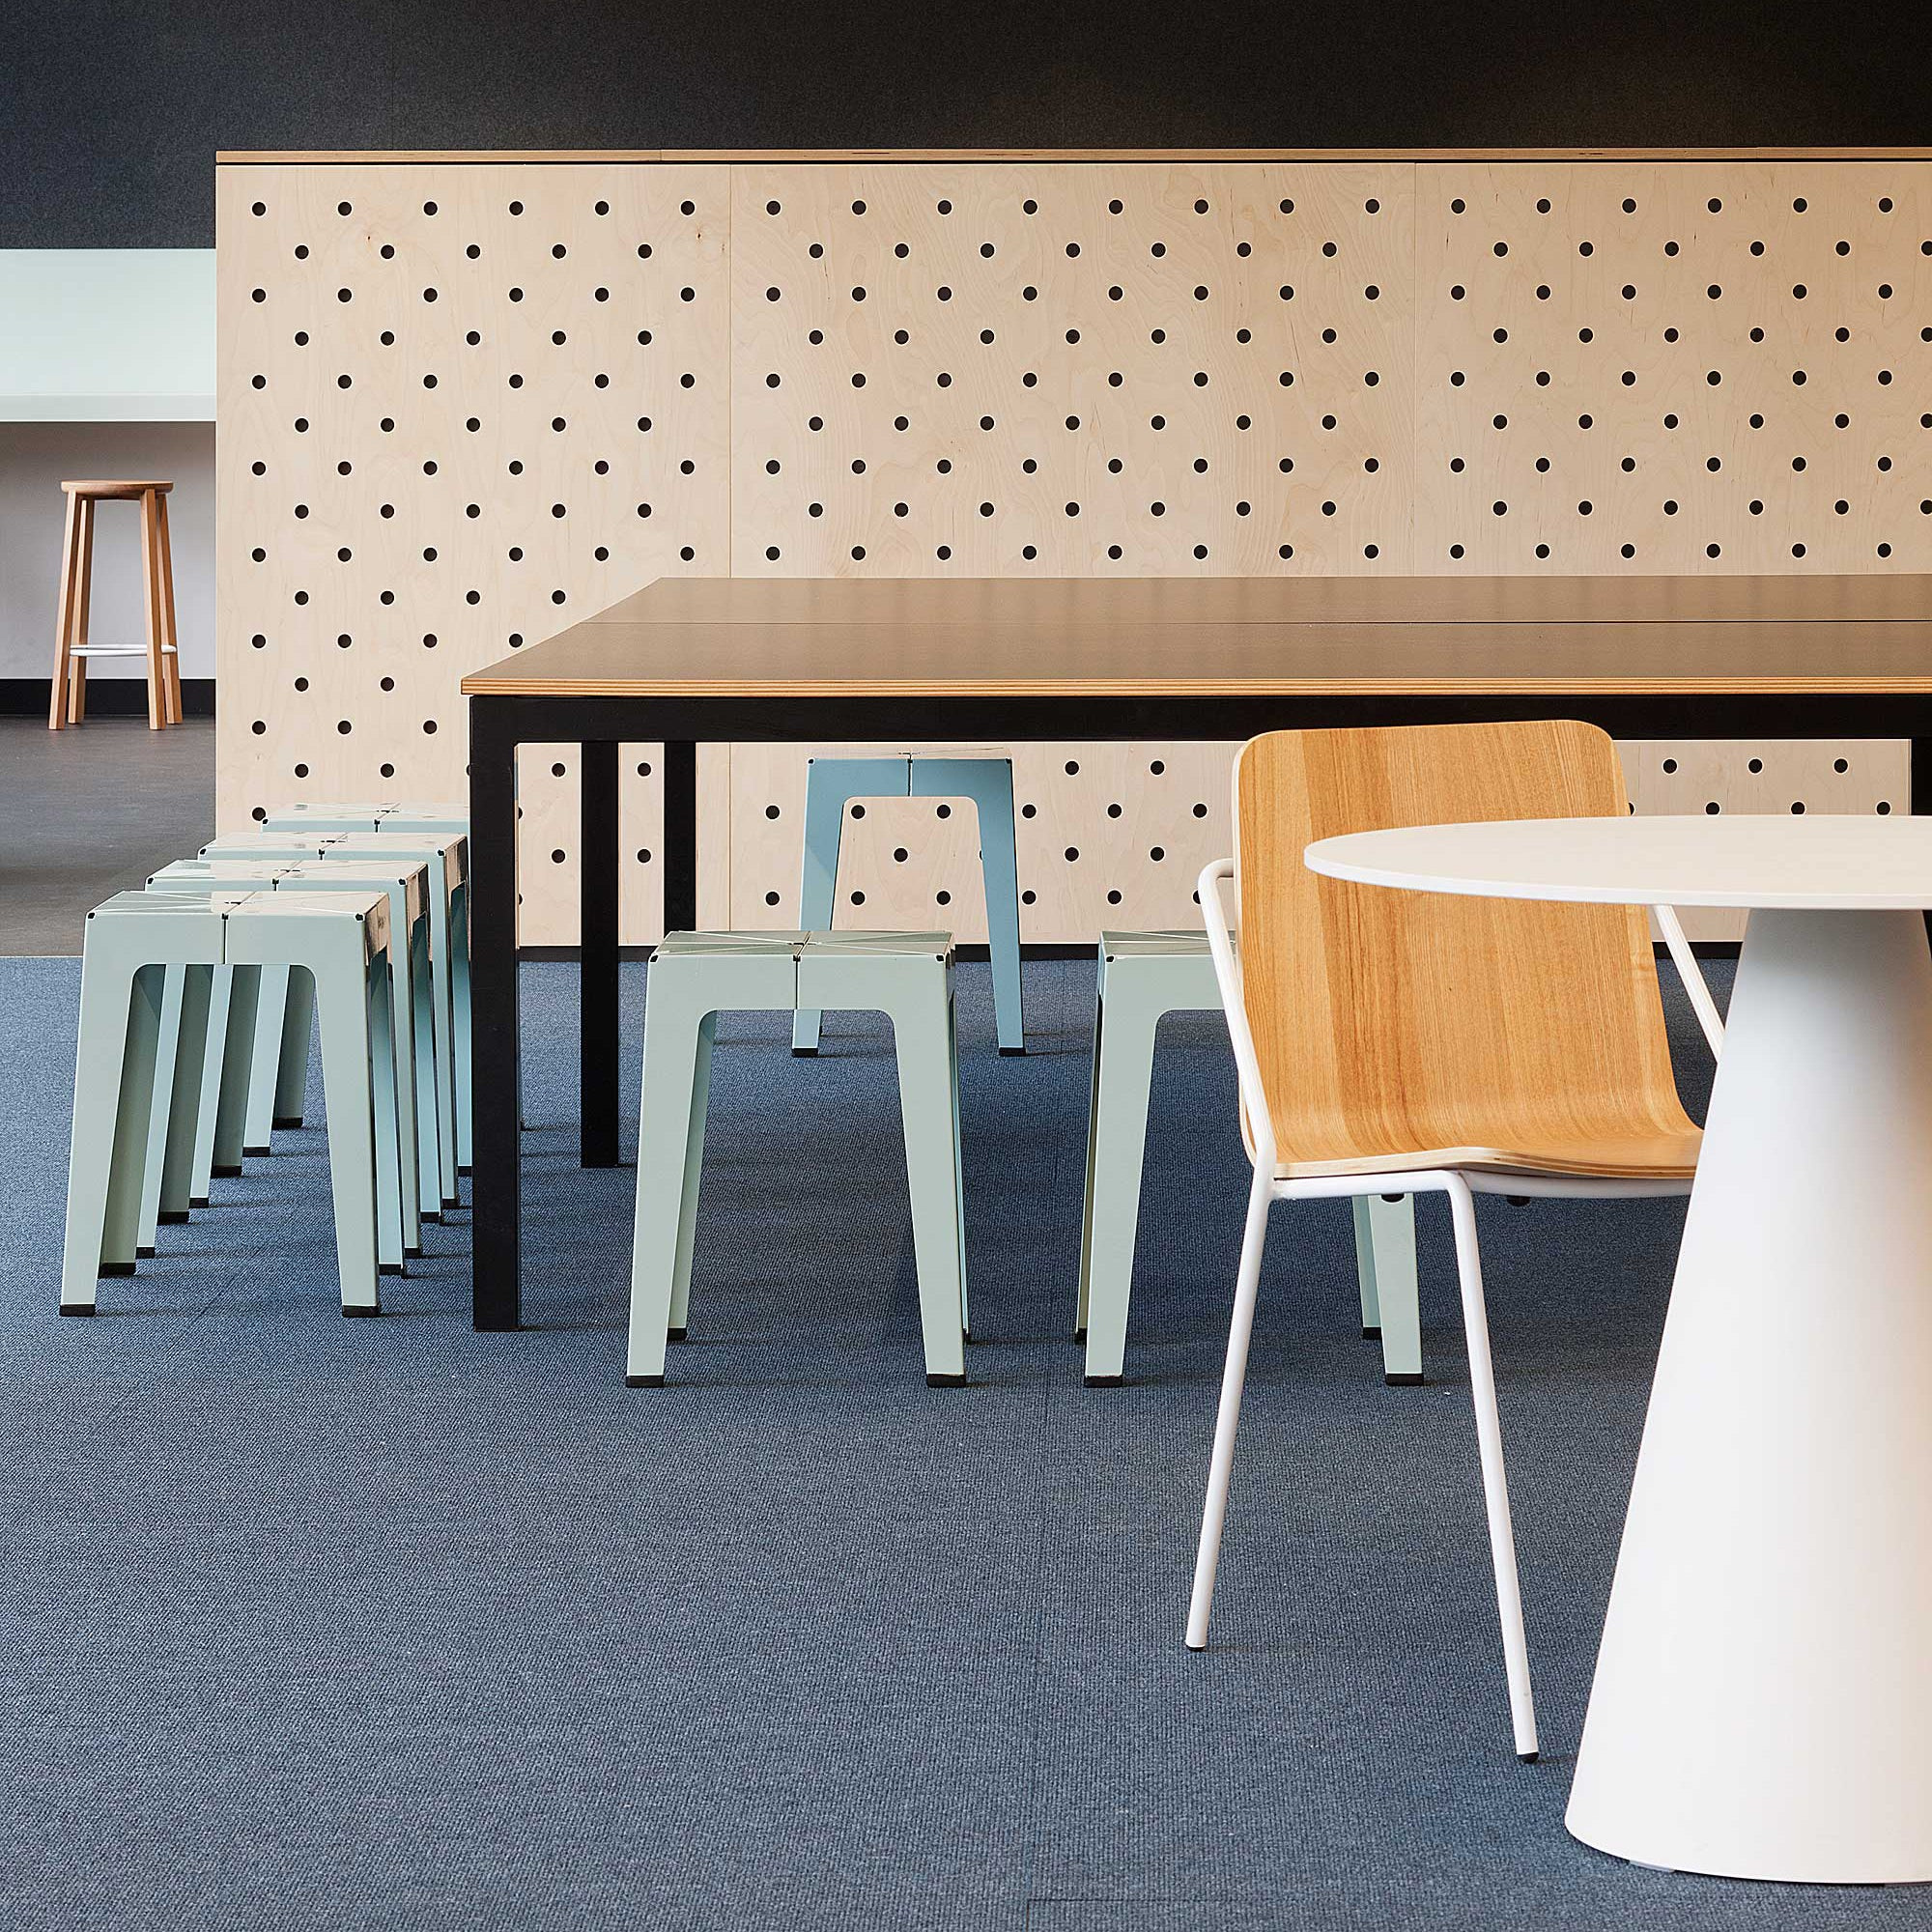 Monash University | Tuck Stool| Powder Coated Metal | JCBA | Shannon Mcgrath Photograhy